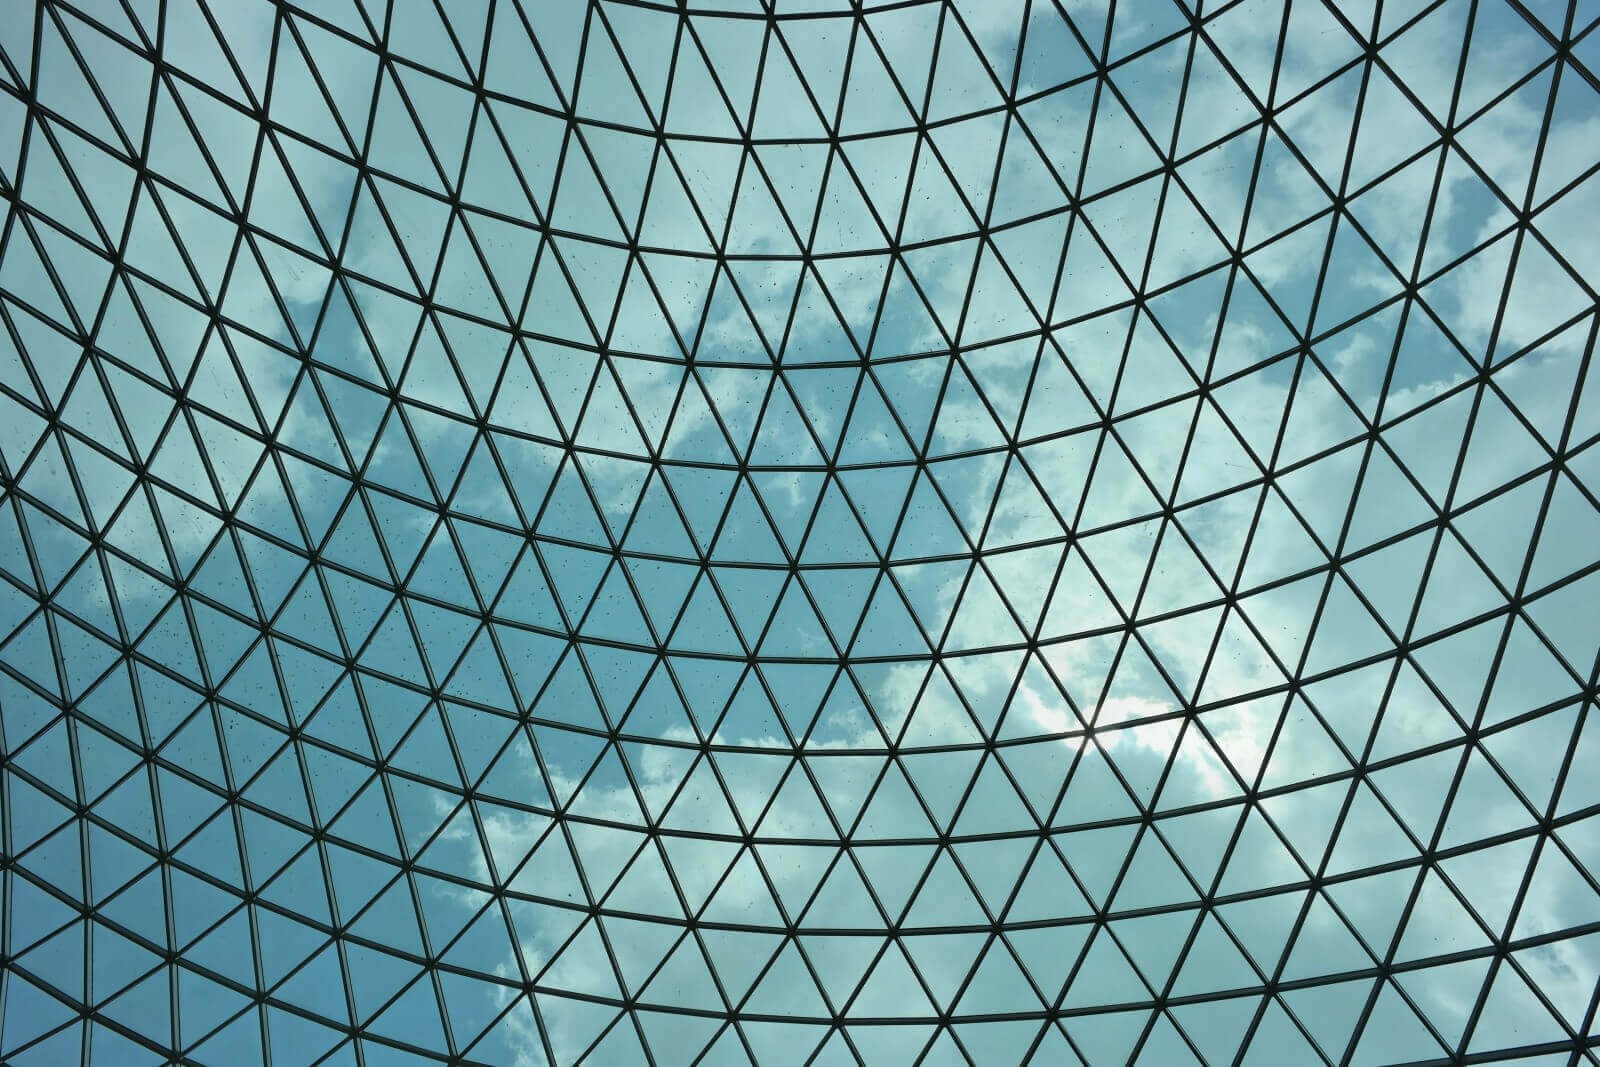 glass-ceiling-british-museum-london-england-1 Contact